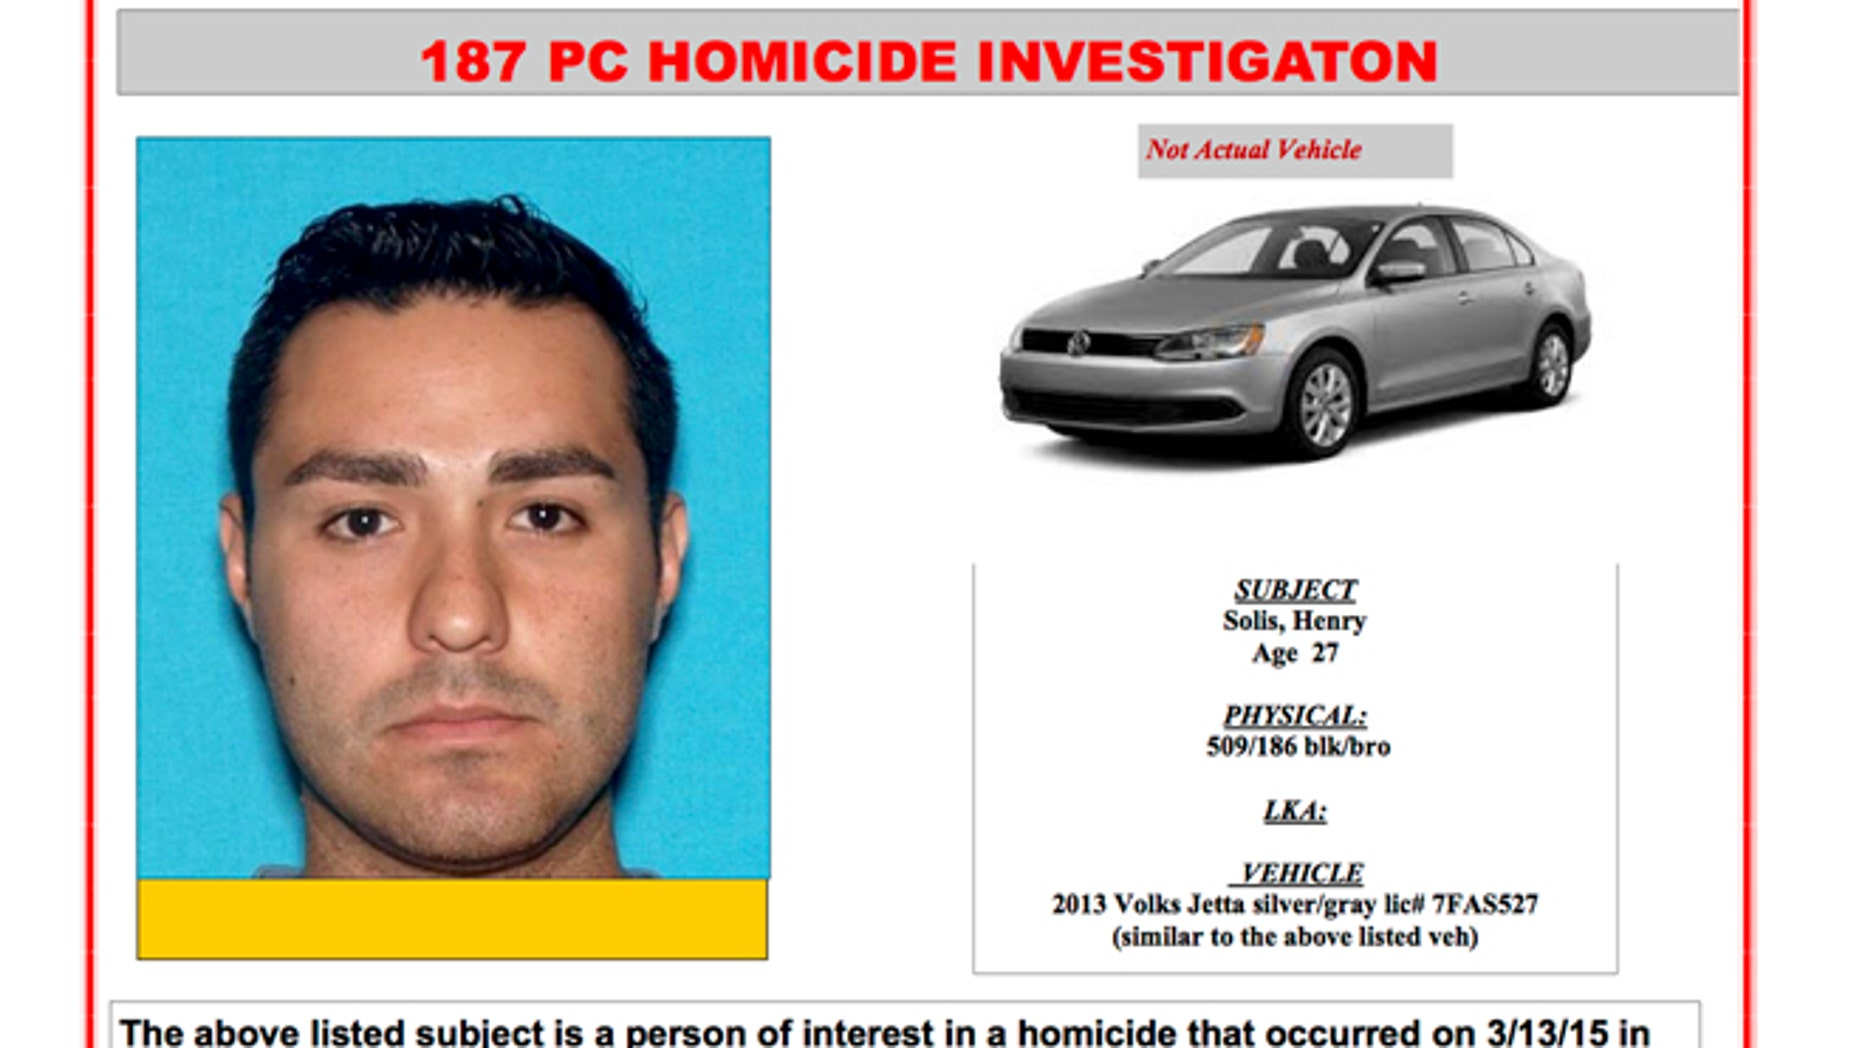 This Internet 'person of interest' message posted online by the Pomona, Calif., Police Department shows Henry Solis. Solis, 27, a rookie Los Angeles police officer, is being sought as a person of interest in connection with a fatal shooting near a bar in Pomona Friday night, March 13, 2015. Solis' Volkswagen Jetta was found in a Pomona alley about four blocks from where Salome Rodriguez Jr. was gunned down Friday when a fistfight turned deadly. Solis has not reported for work since the shooting.(AP Photo/Pomona Police Department)